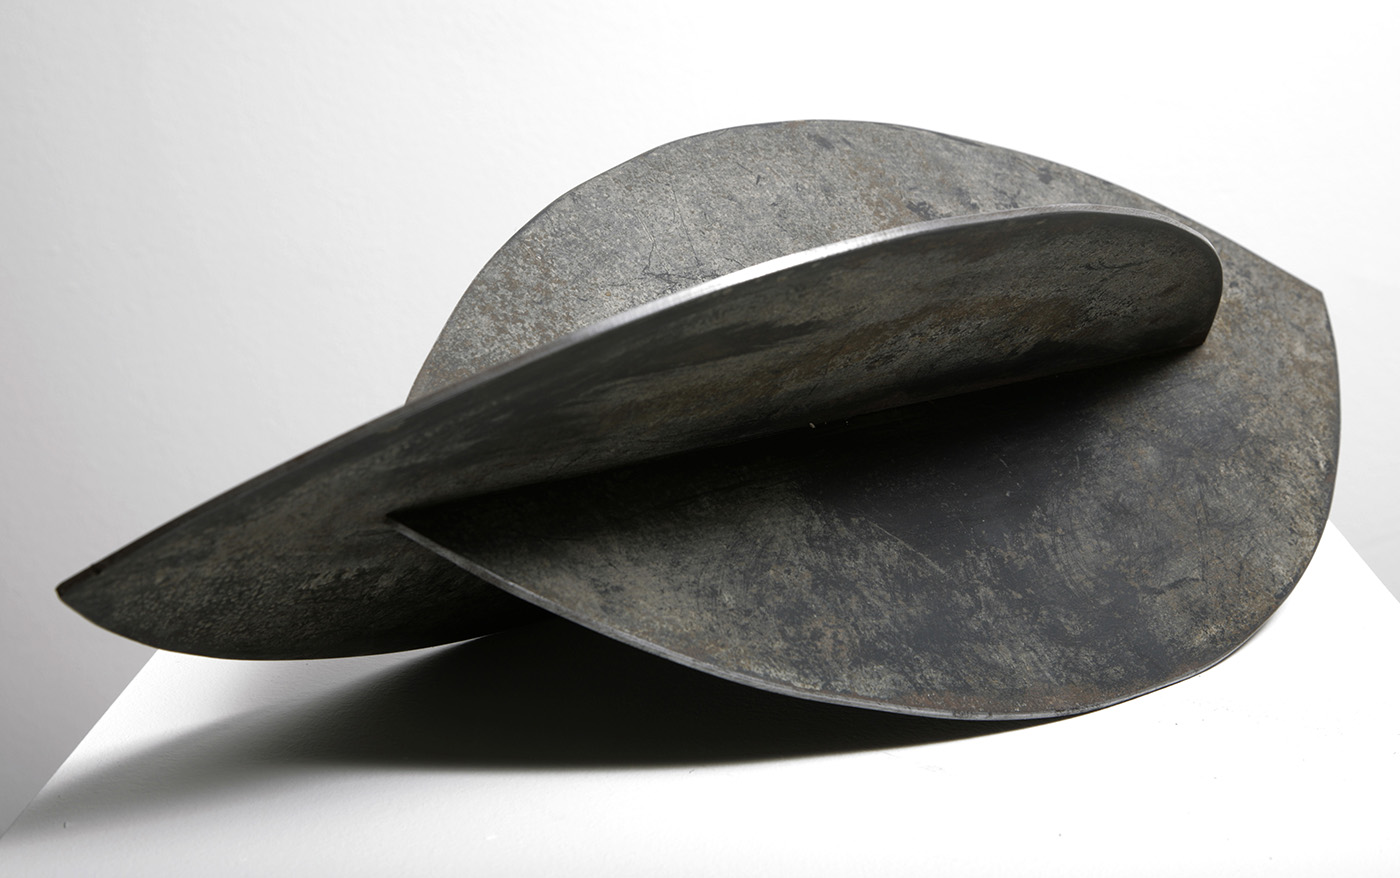 Anthea Alley, Untitled, c1960. Cut and welded sheet steel, 7 x 21 x 10 inches. Courtesy of England & Co.